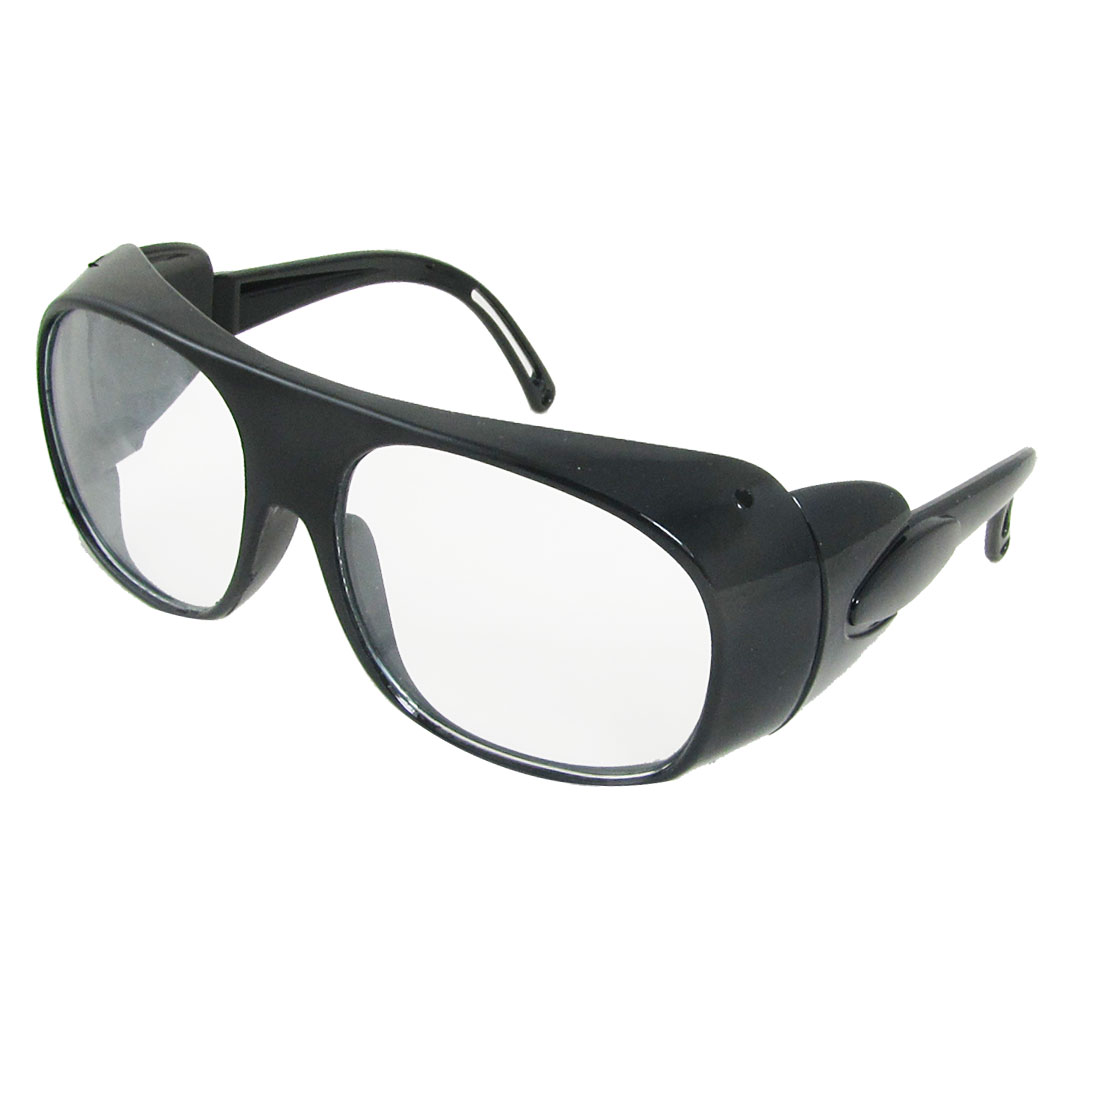 Clear Black Full Frame Hollow Out Arms Clear Lens Welding Eyeglasses Tyufj